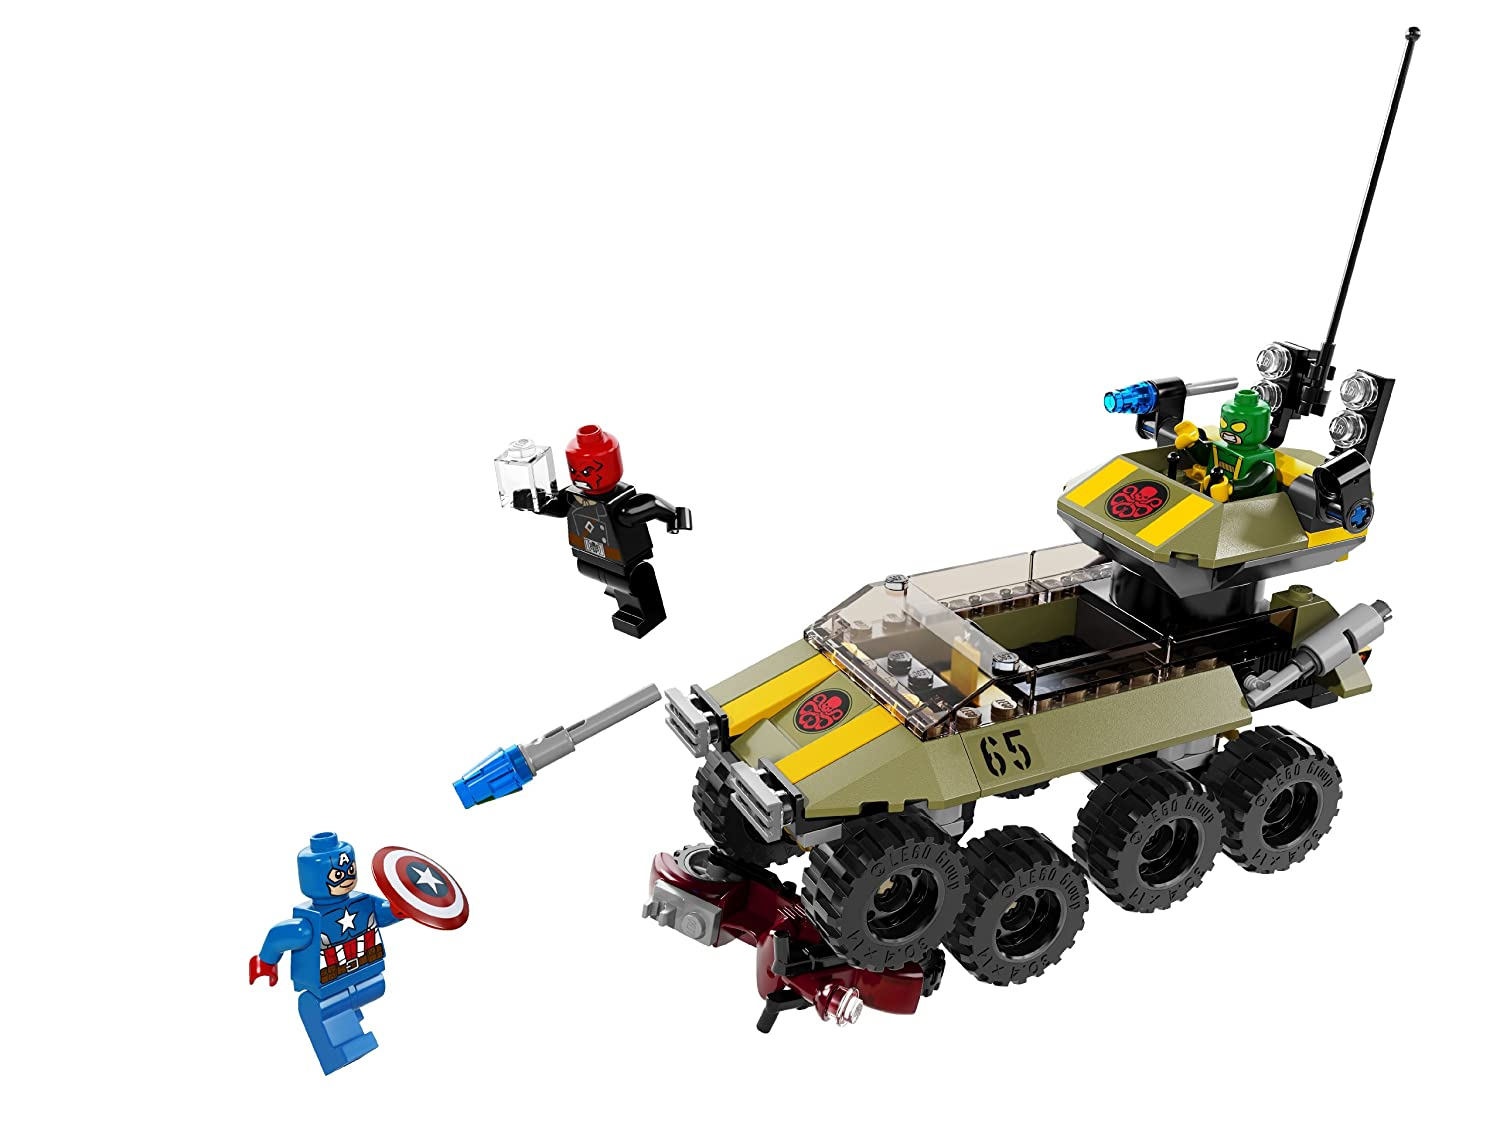 Lego superheroes 76017 captain america vs hydra new free shipping 658109694424 ebay - Lego capitaine america ...